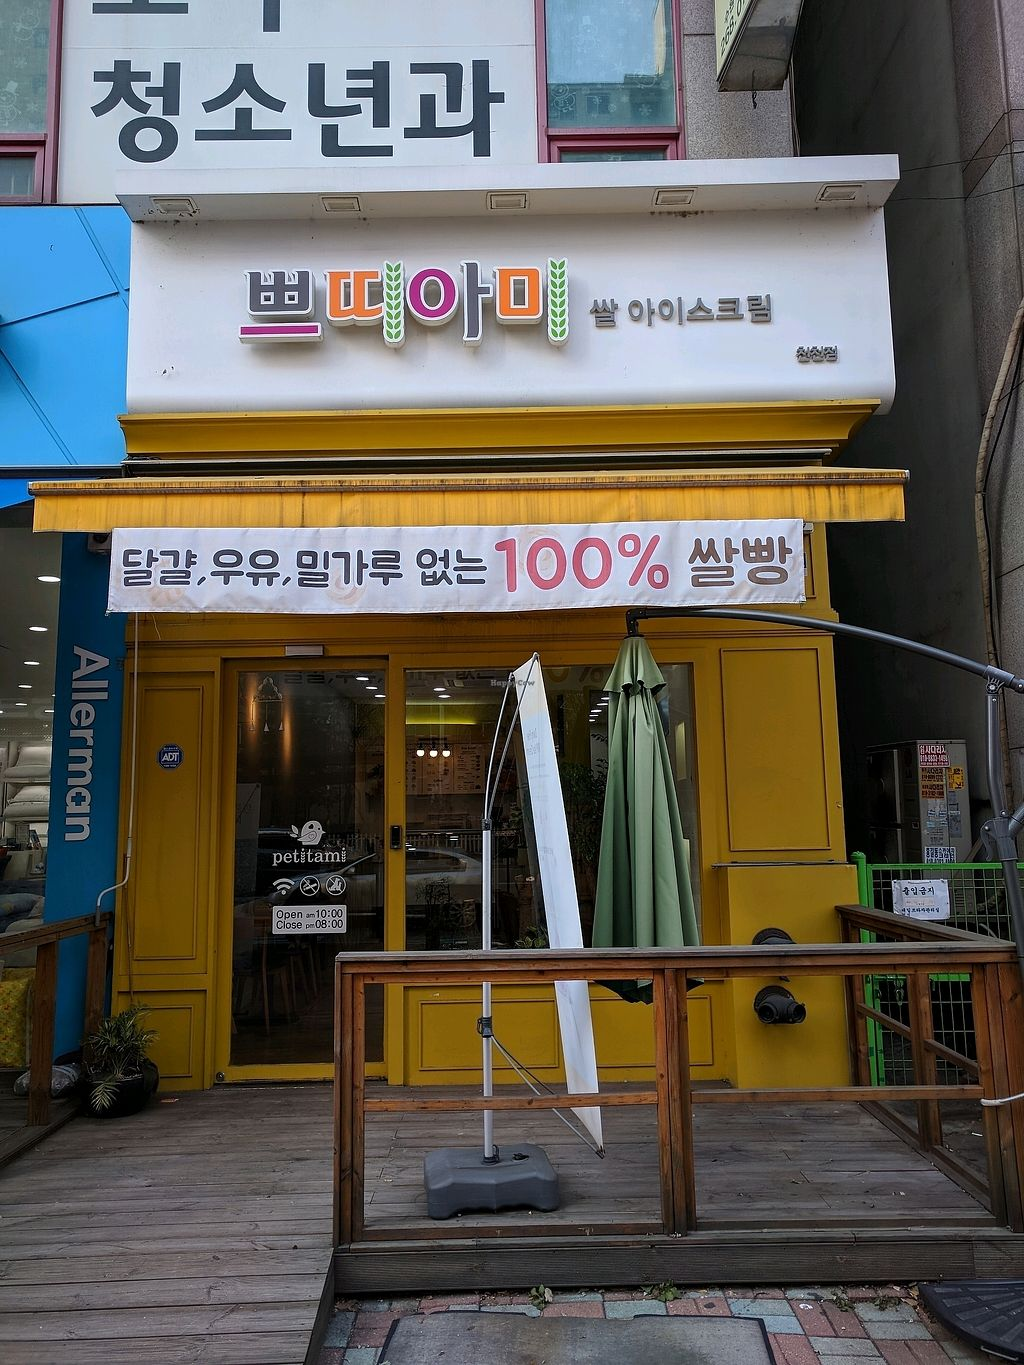 "Photo of Petitami at Suwon Cheon-cheon  by <a href=""/members/profile/PhillipPark"">PhillipPark</a> <br/>cafe <br/> December 2, 2017  - <a href='/contact/abuse/image/106403/331388'>Report</a>"